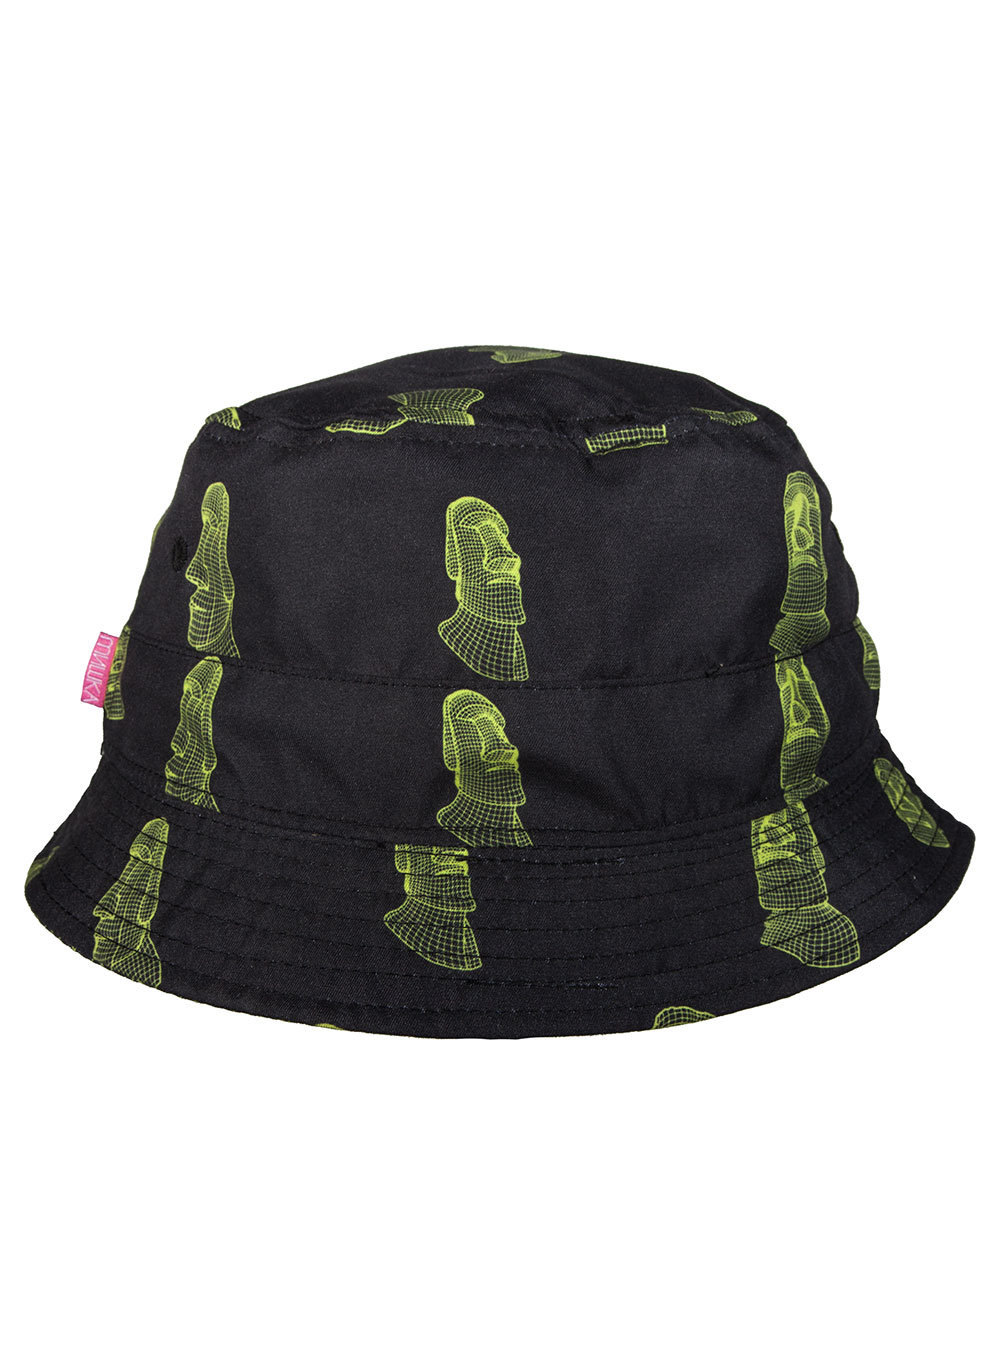 Monolithic Reversible Bucket Hat